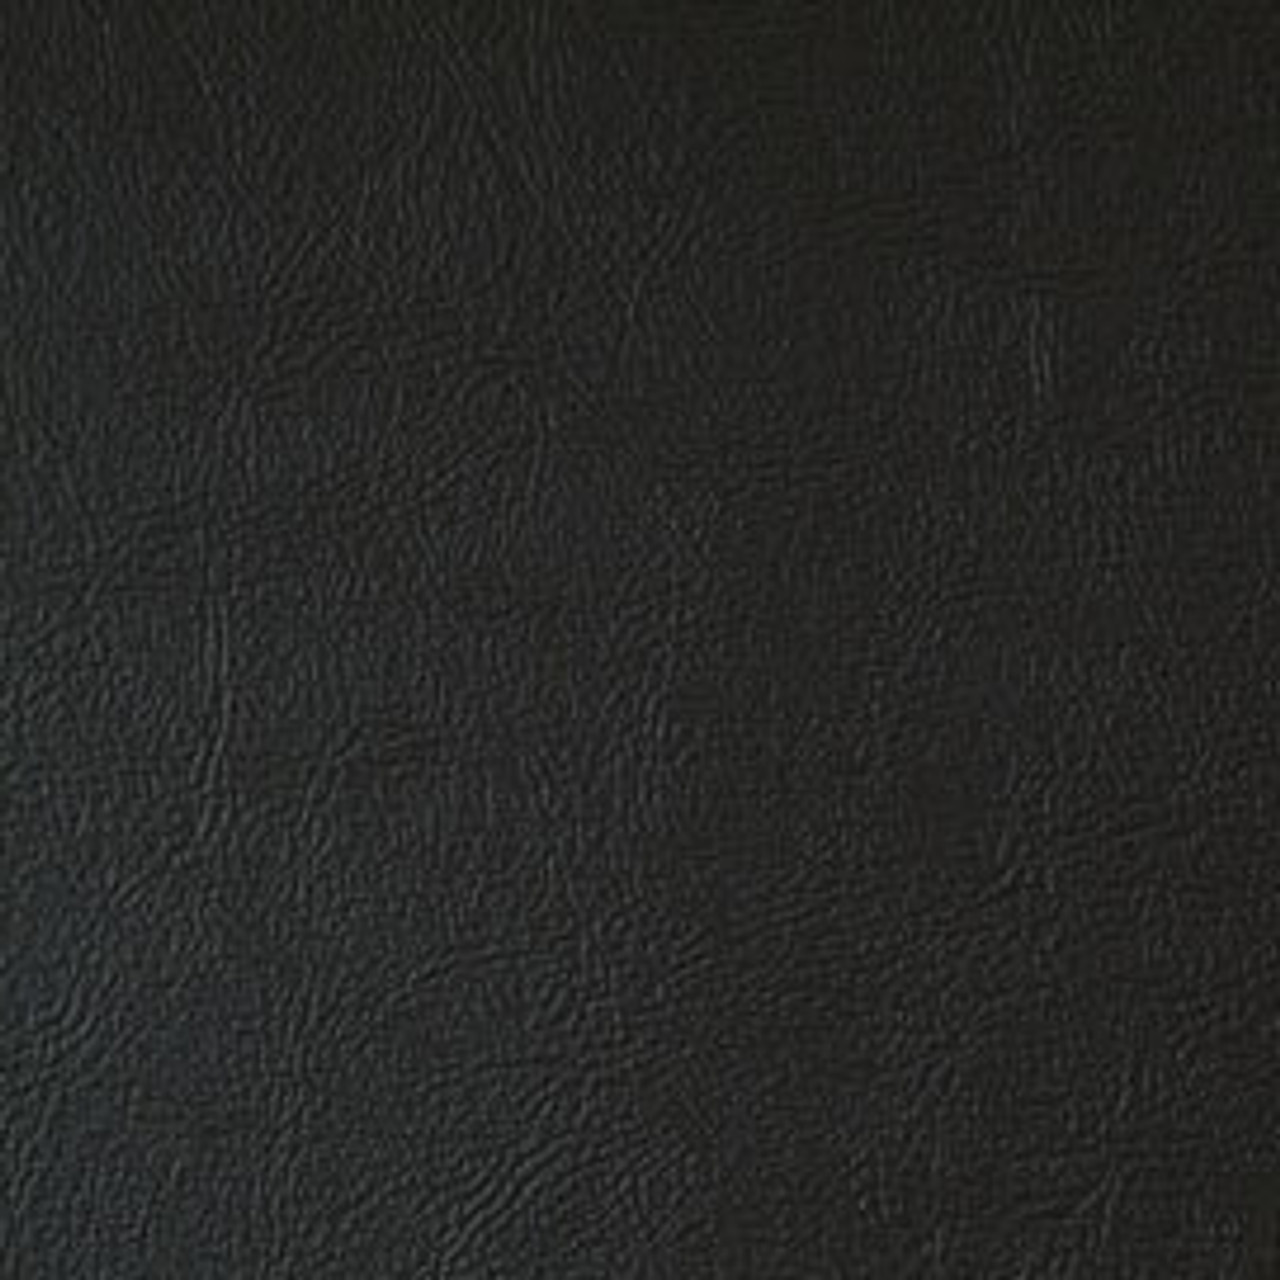 """HEAVY WEIGHT Sierra Black Vinyl, 35 oz. 54"""" - Sold by the CONTINUOUS YARD!"""